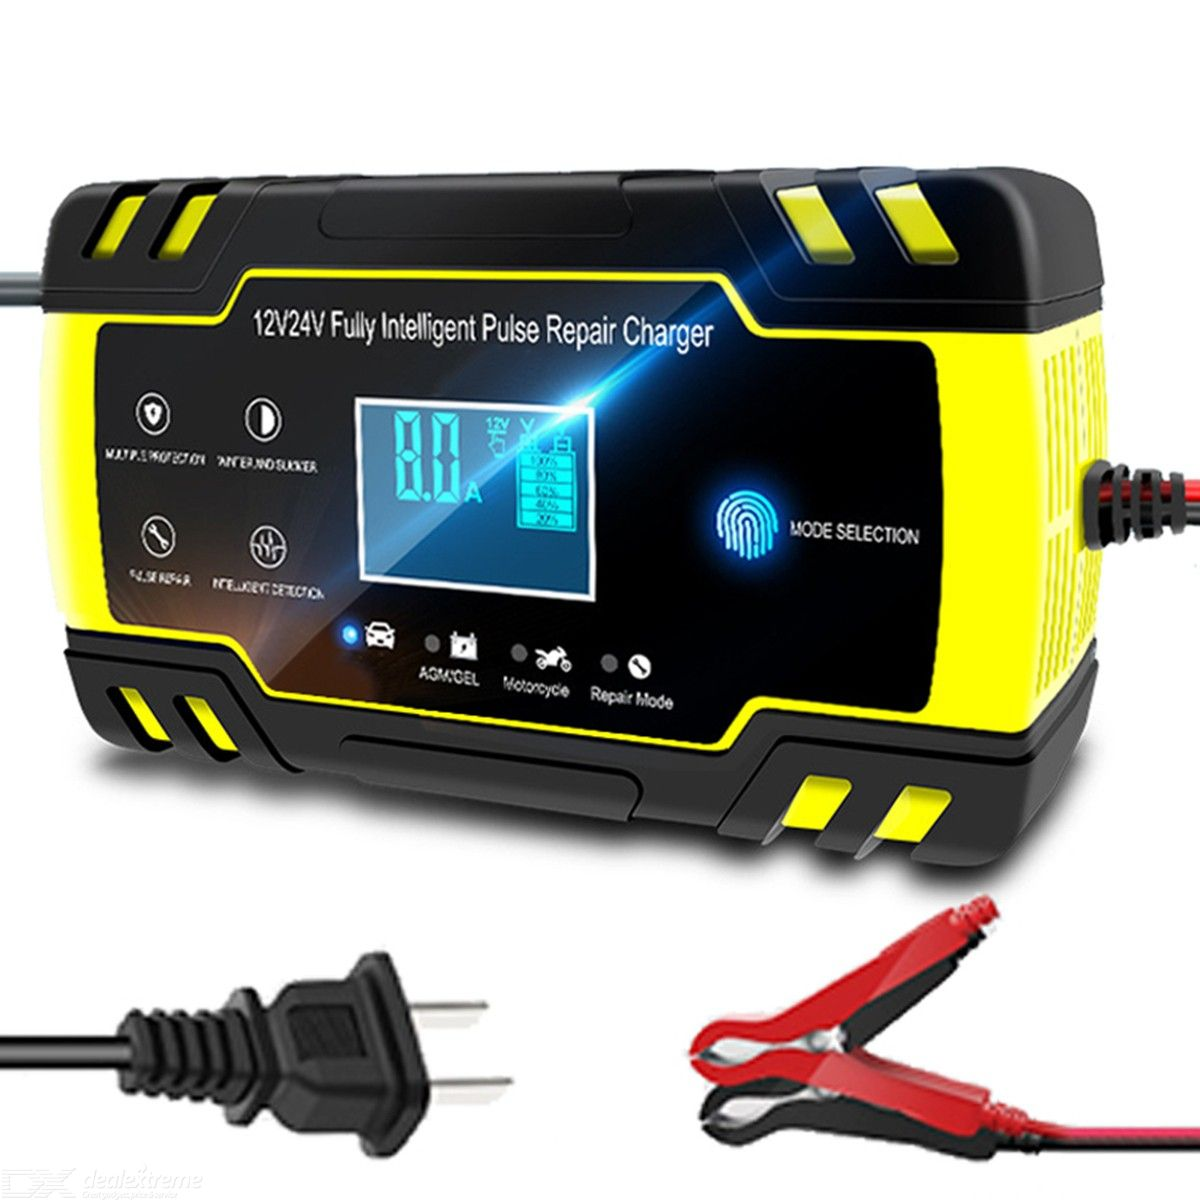 12V-24V 8A Full Auto Car Battery Charger Power Pulse Repair Chargers Wet Dry Lead Acid Battery-chargers - EU Plug